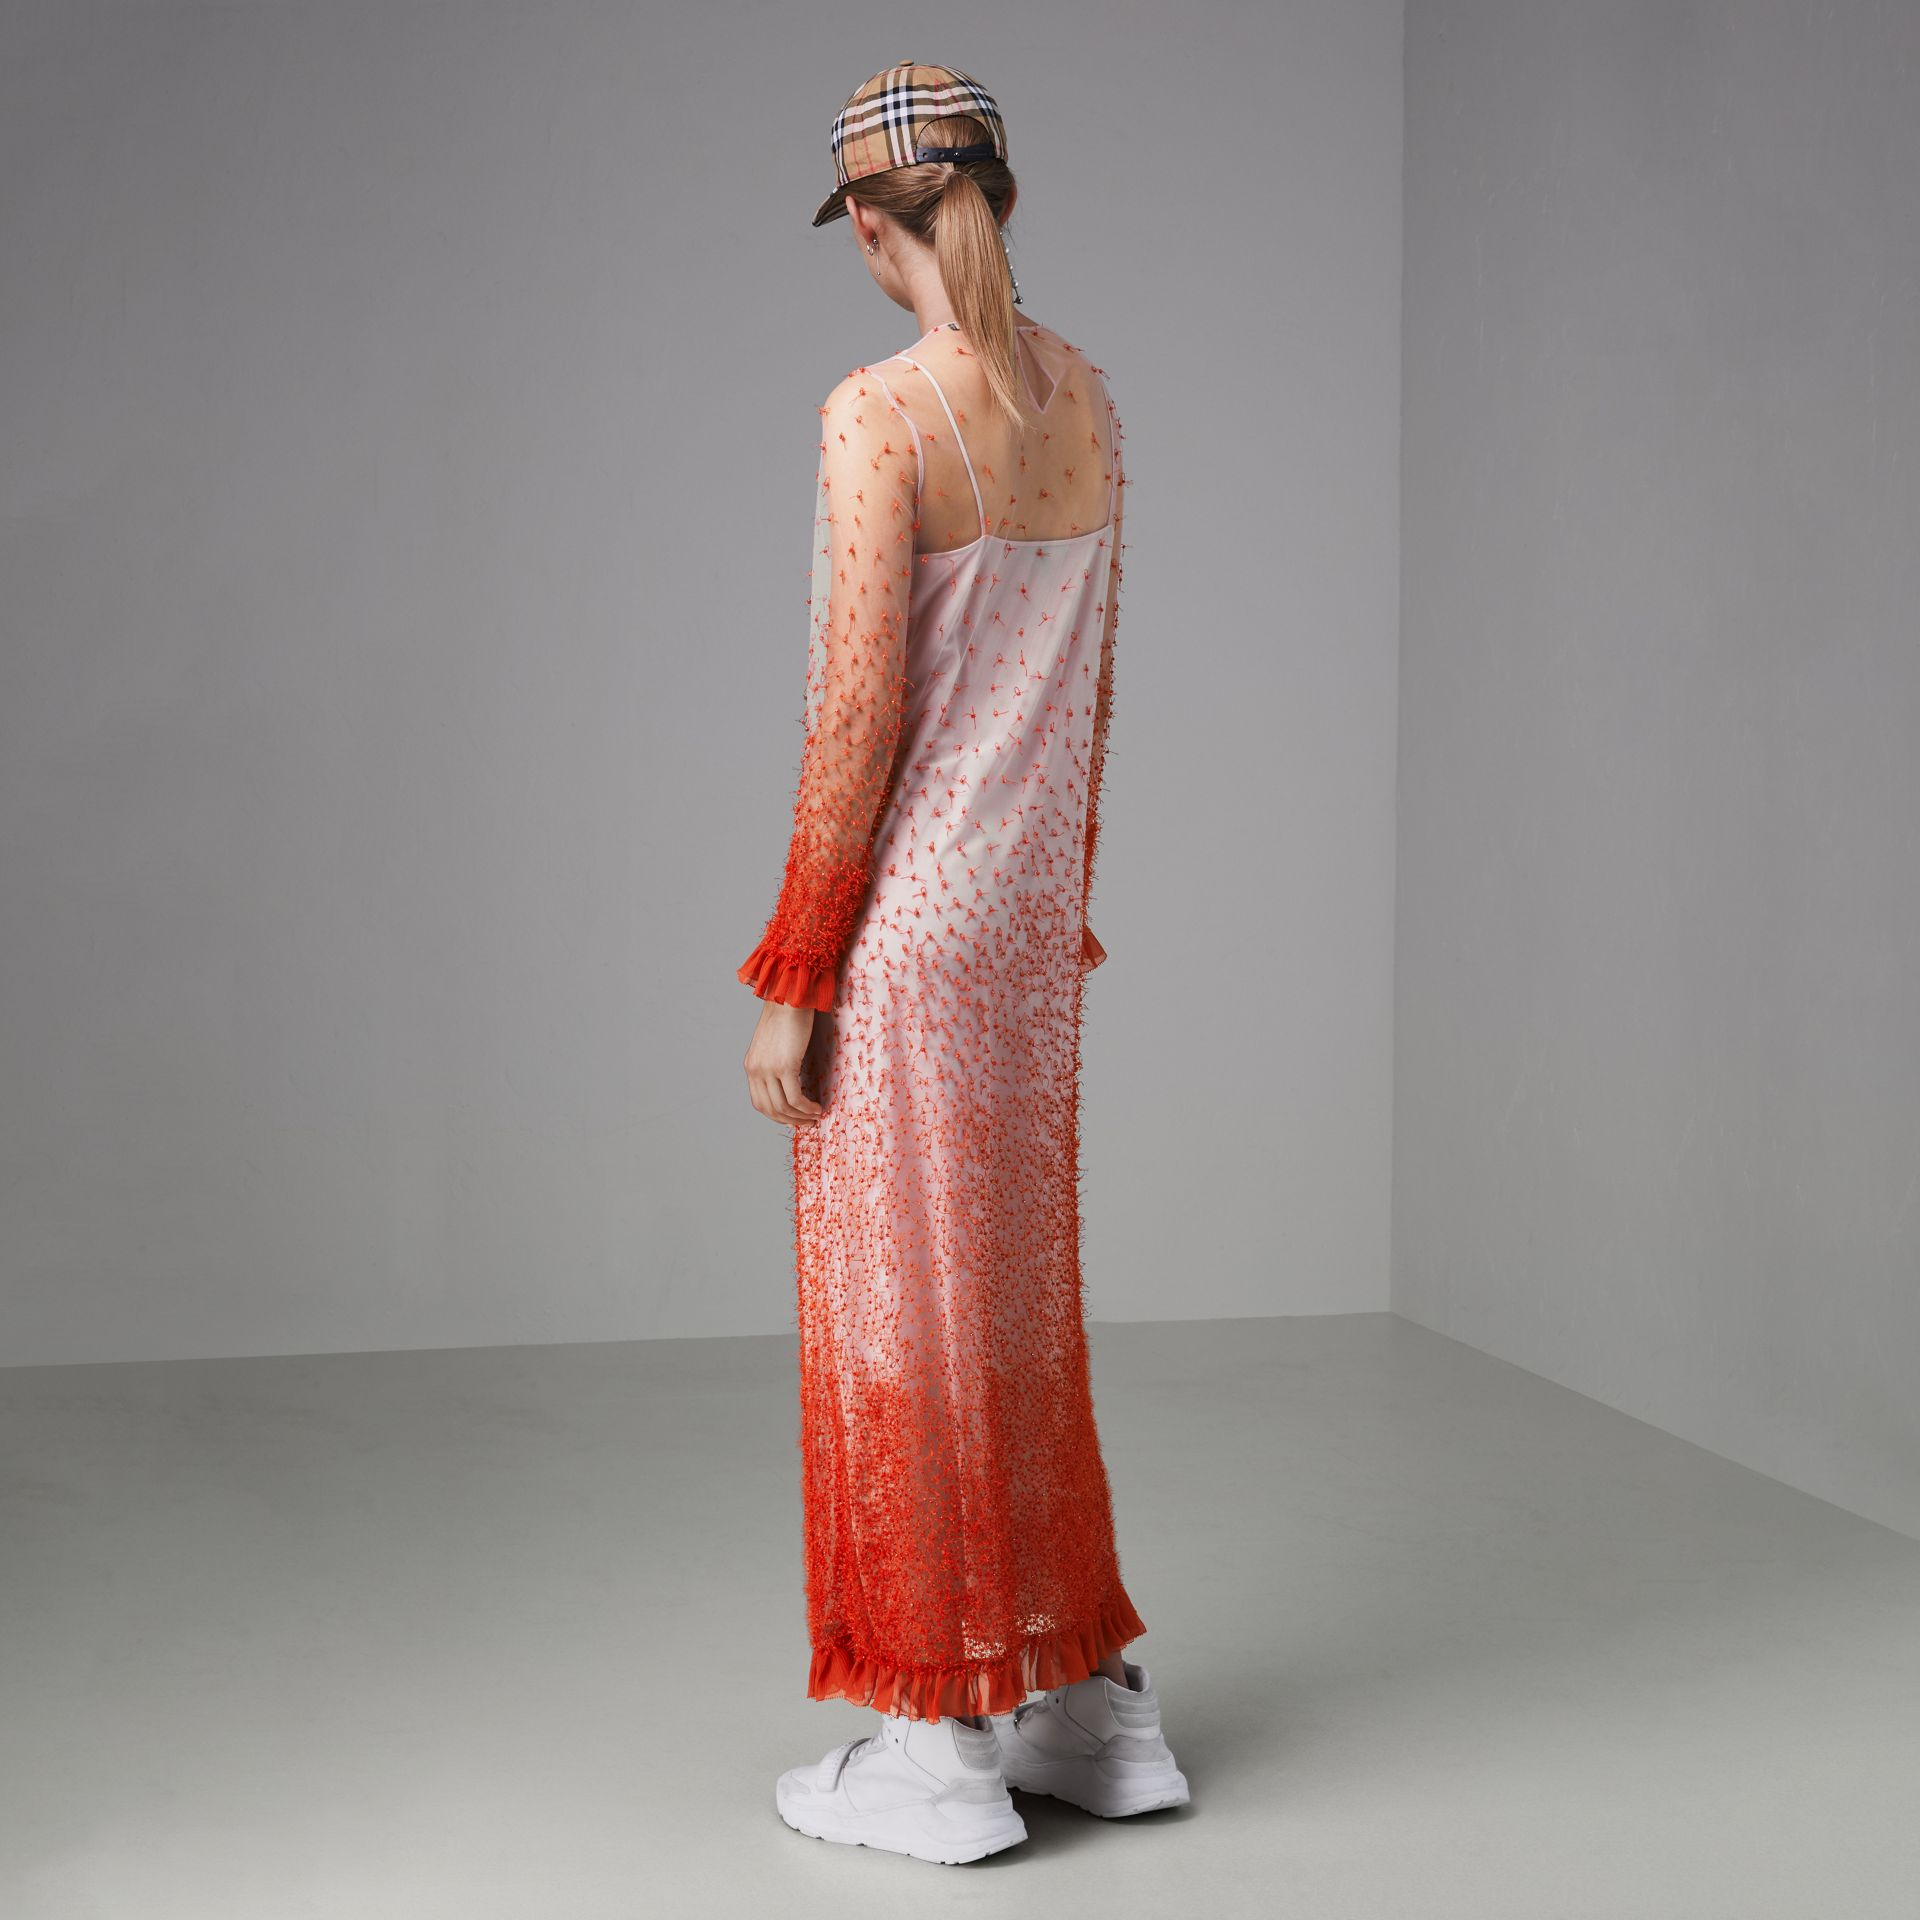 Dégradé Hand-beaded Crepon Dress in Coral - Women | Burberry - gallery image 2